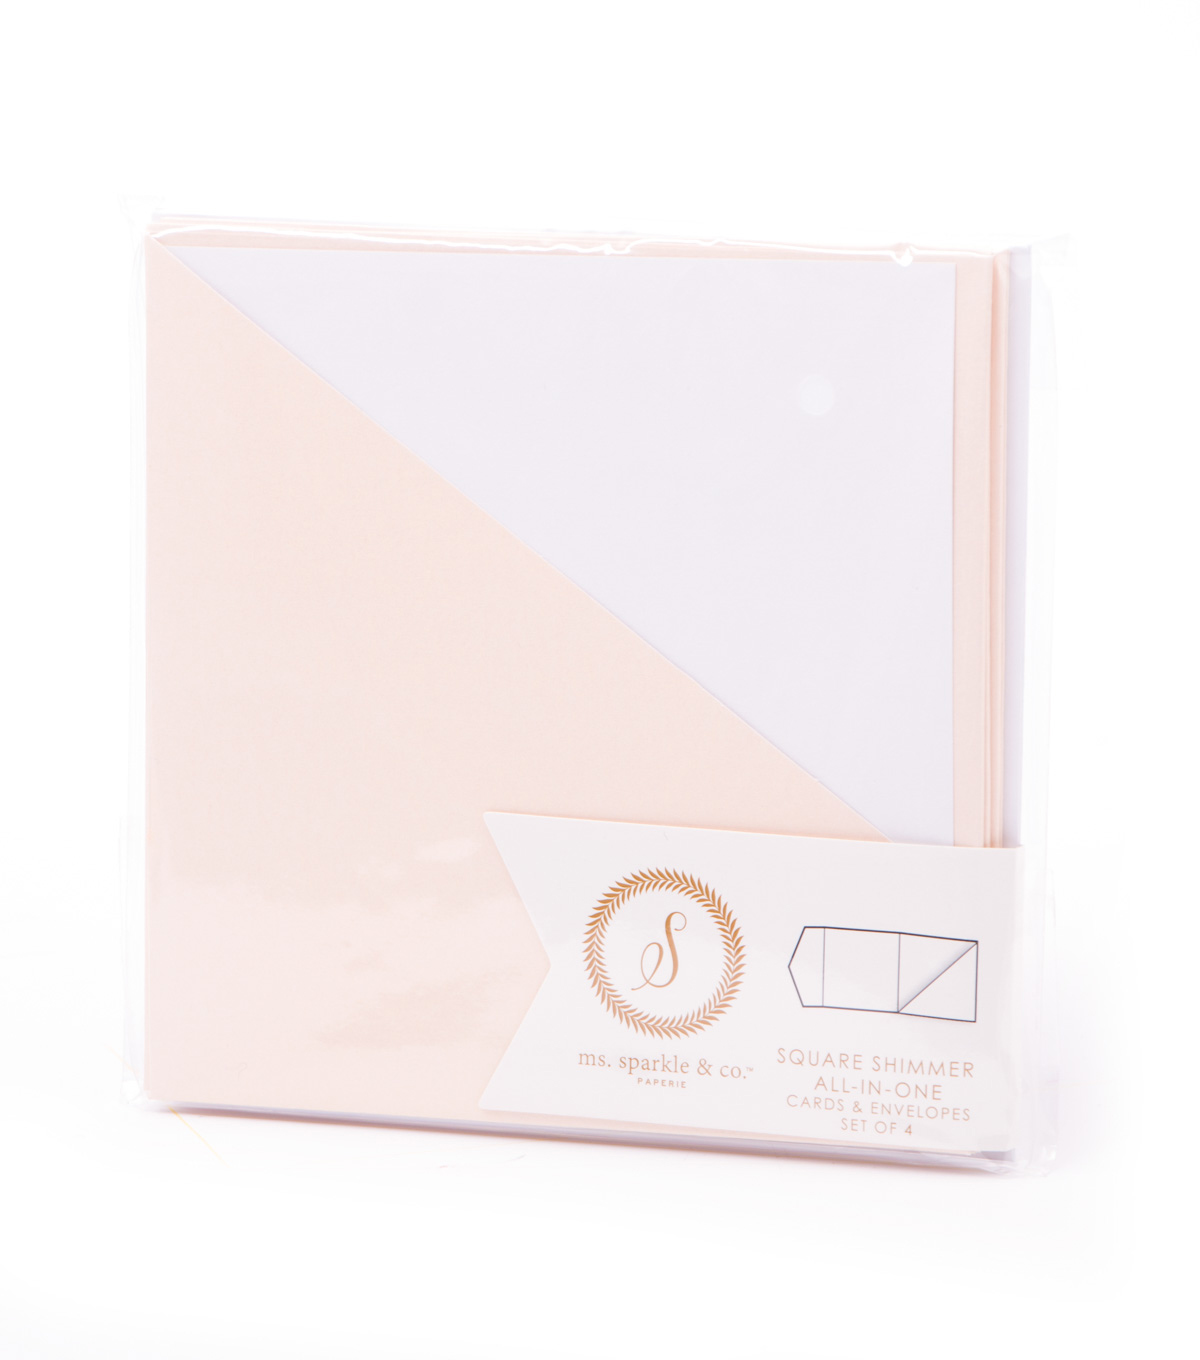 Ms. Sparkle & Co. All In One Shimmer Square Cards & Envelopes-Blush